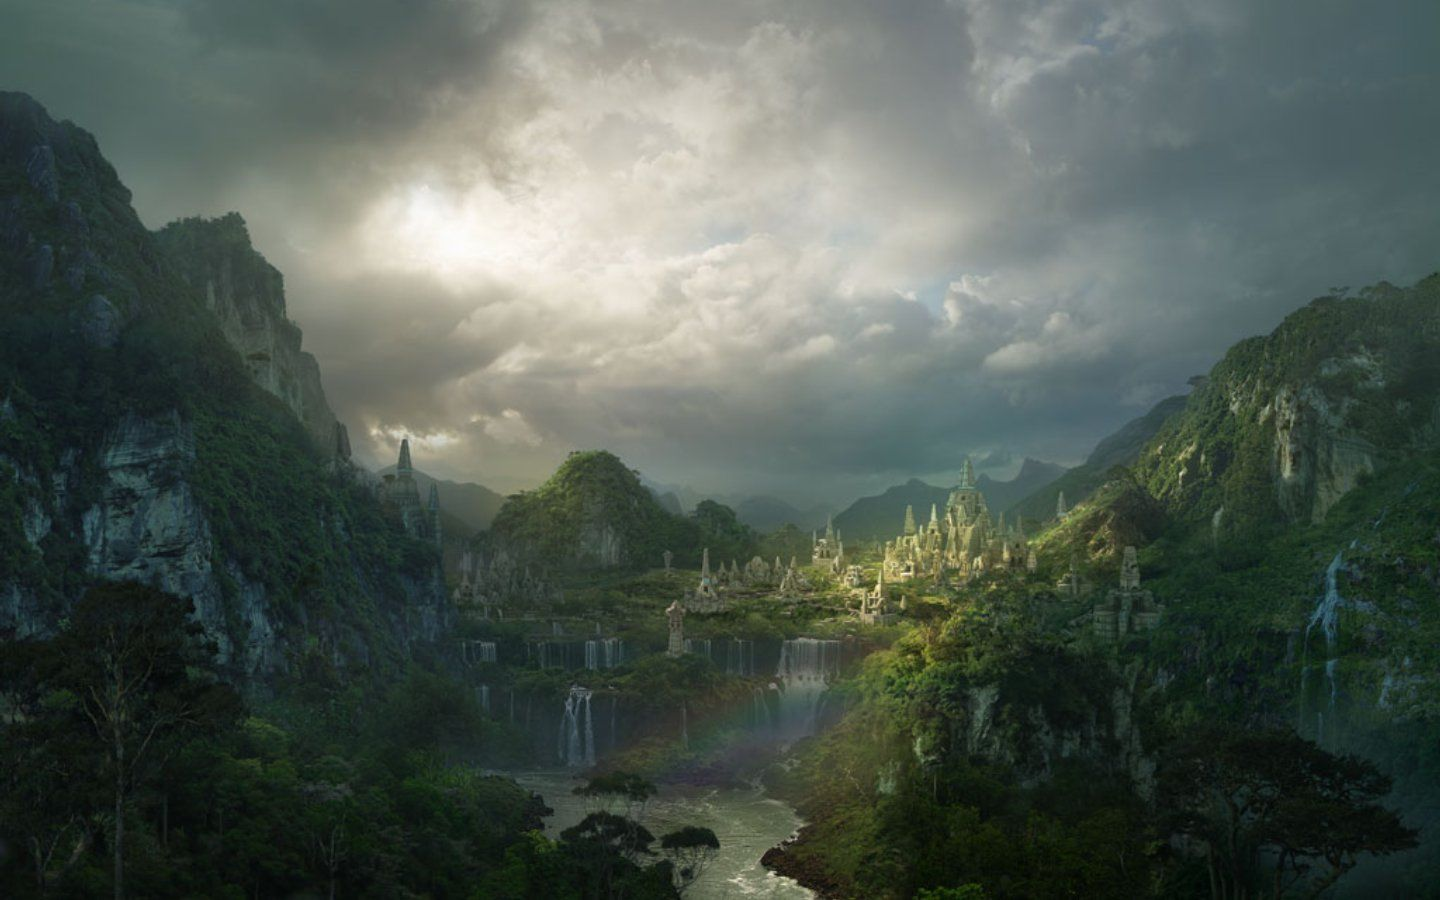 Magical Fantasy Hd Wallpapers That Will Take Your Breathe: Amazing Fantasy Valley